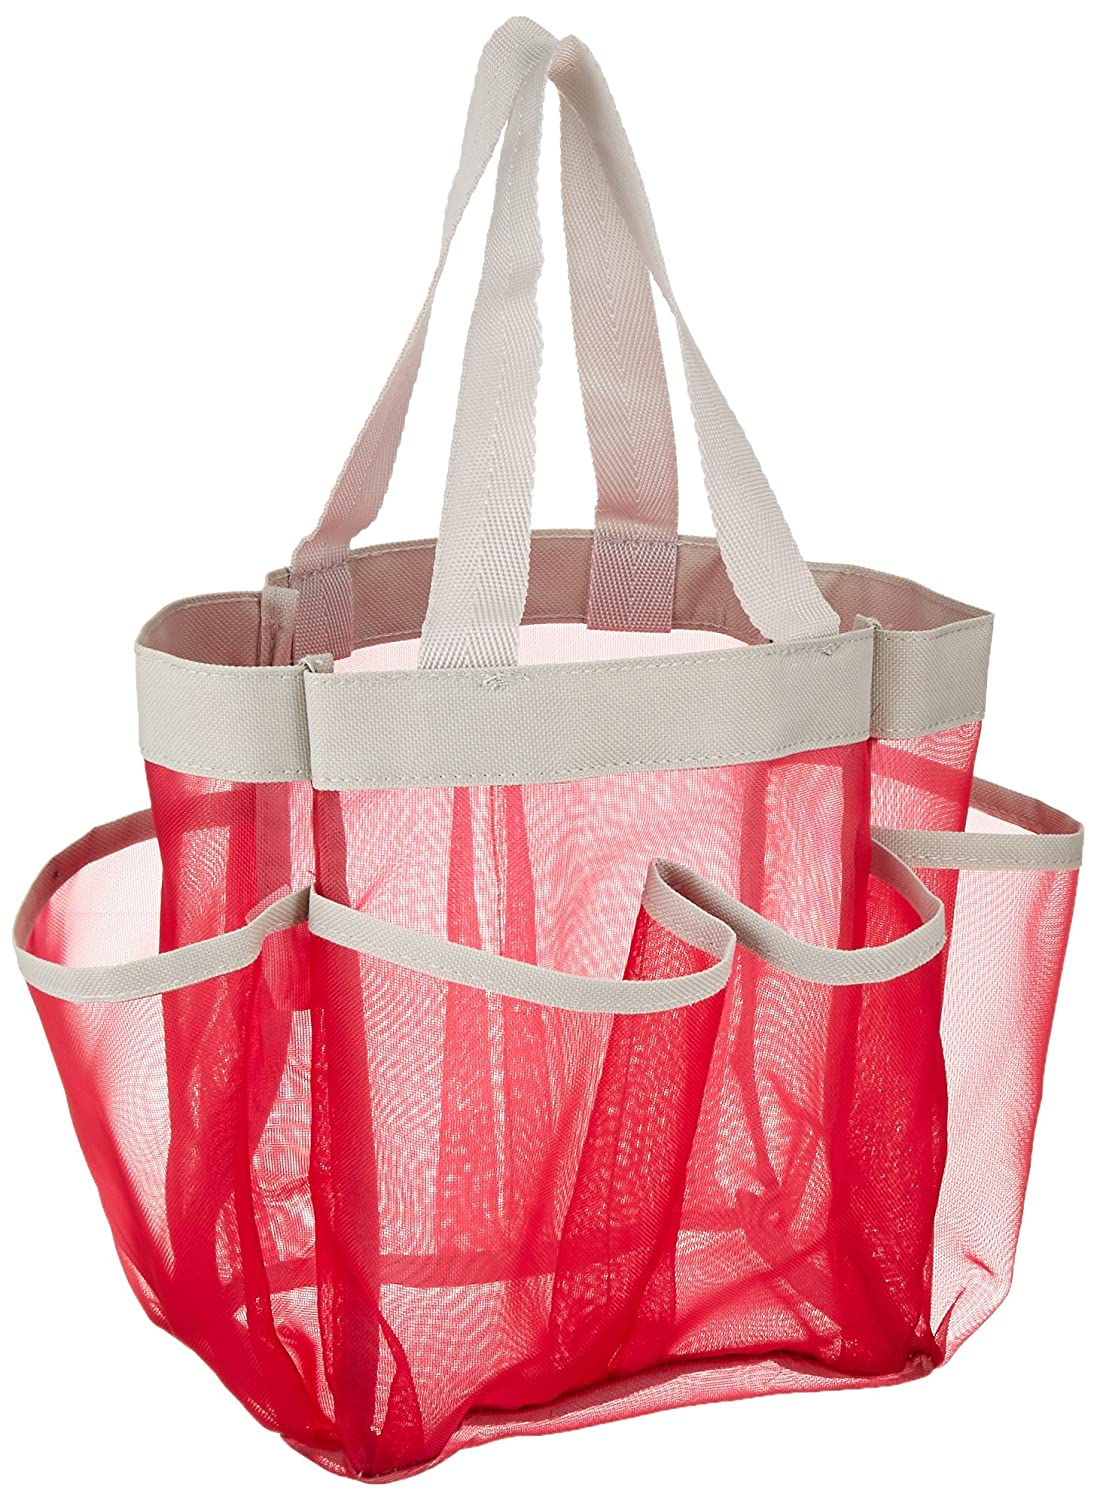 Honey-Can-Do SFT-06967 Quick Dry Shower Tote, Grey